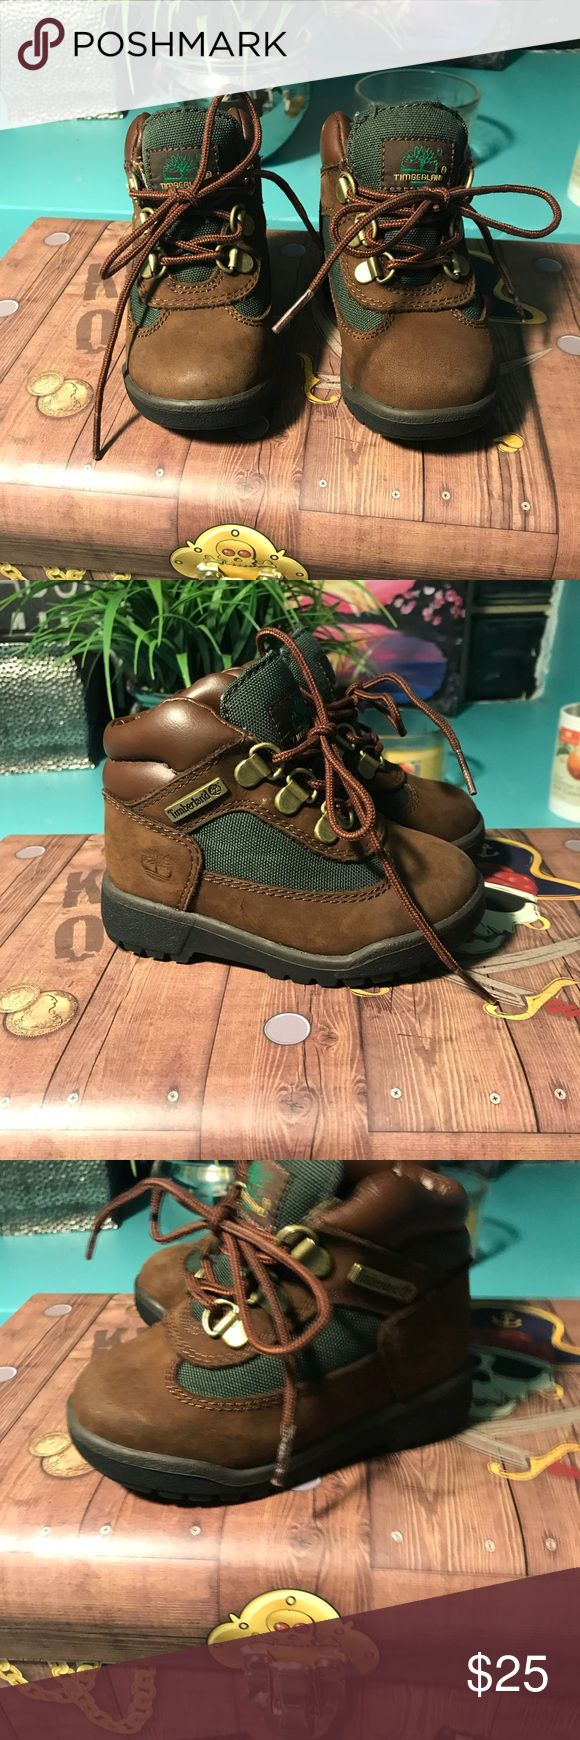 Toddler Boys Timberland boots Toddler boys size 6.5 green and brown chucker style boot mint condition! Timberland Shoes Boots